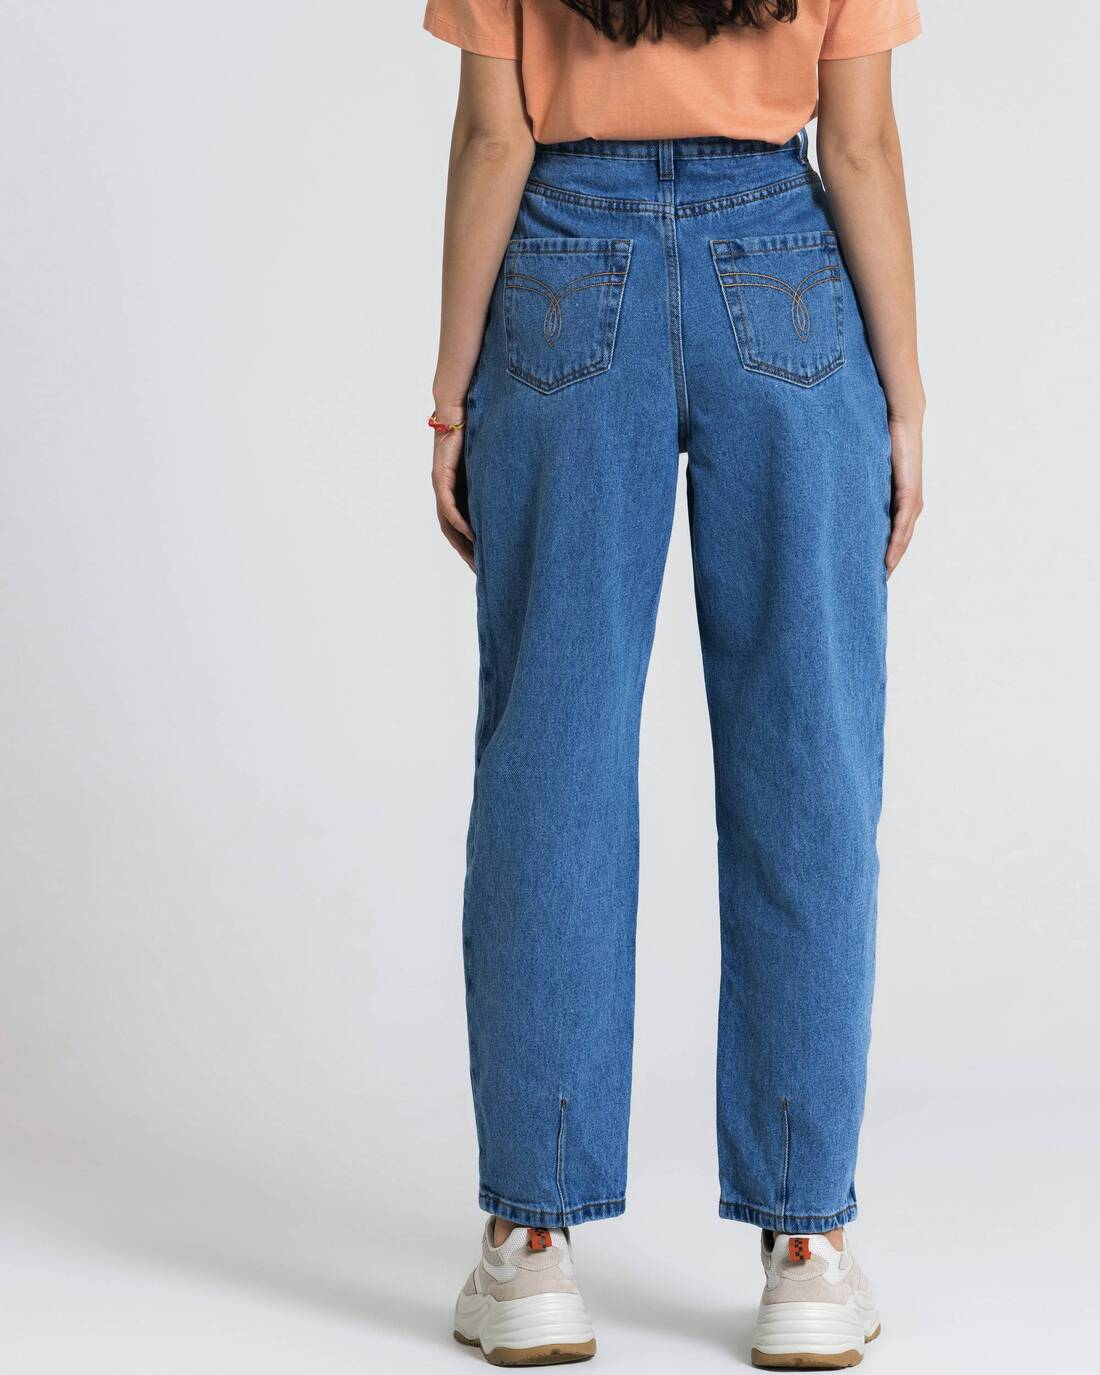 Pleated fit jeans